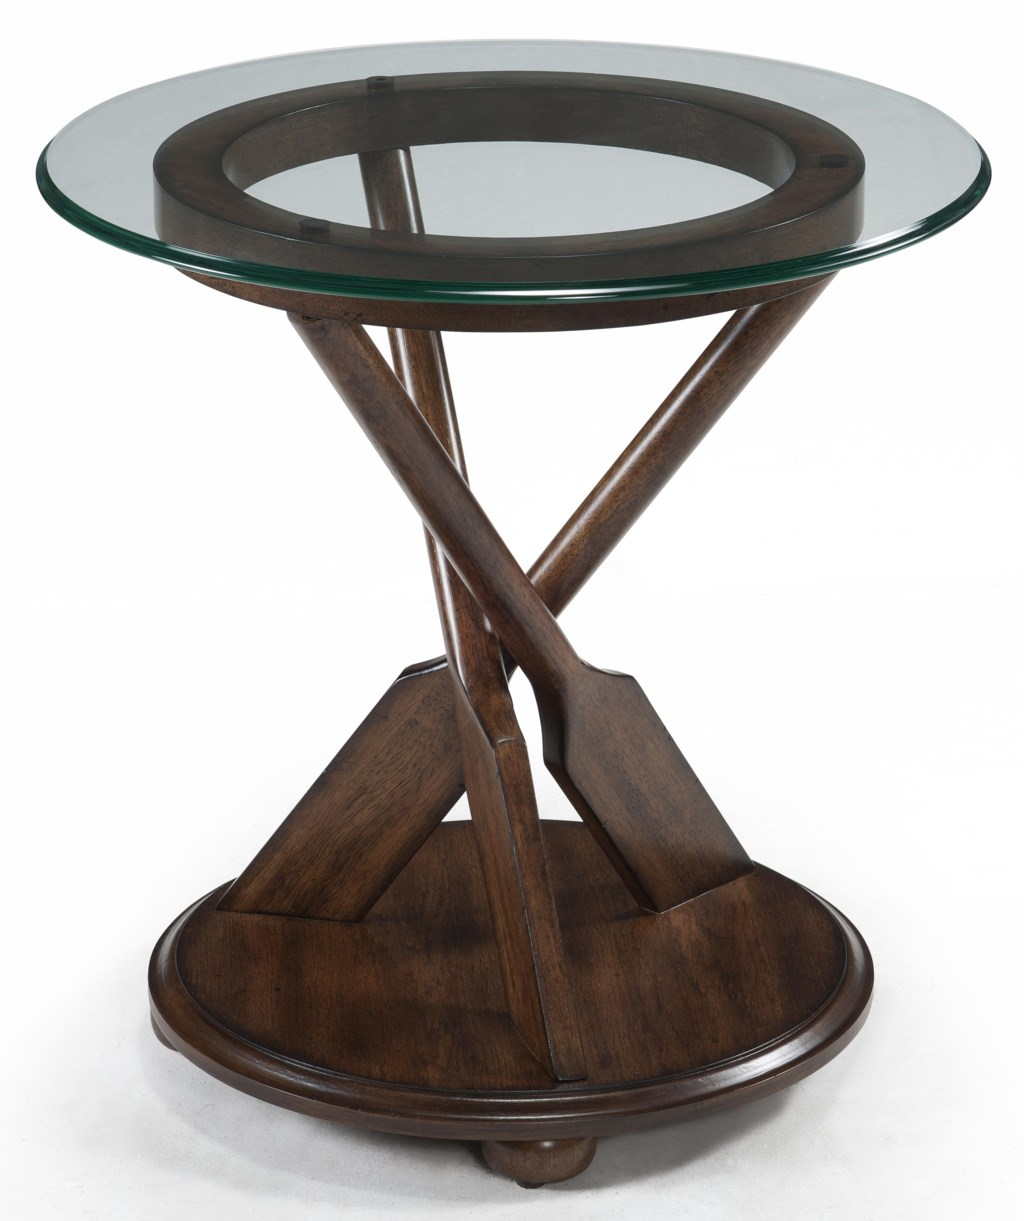 Magnussen Home Beaufort Round End Table with Three Oar Pedestal